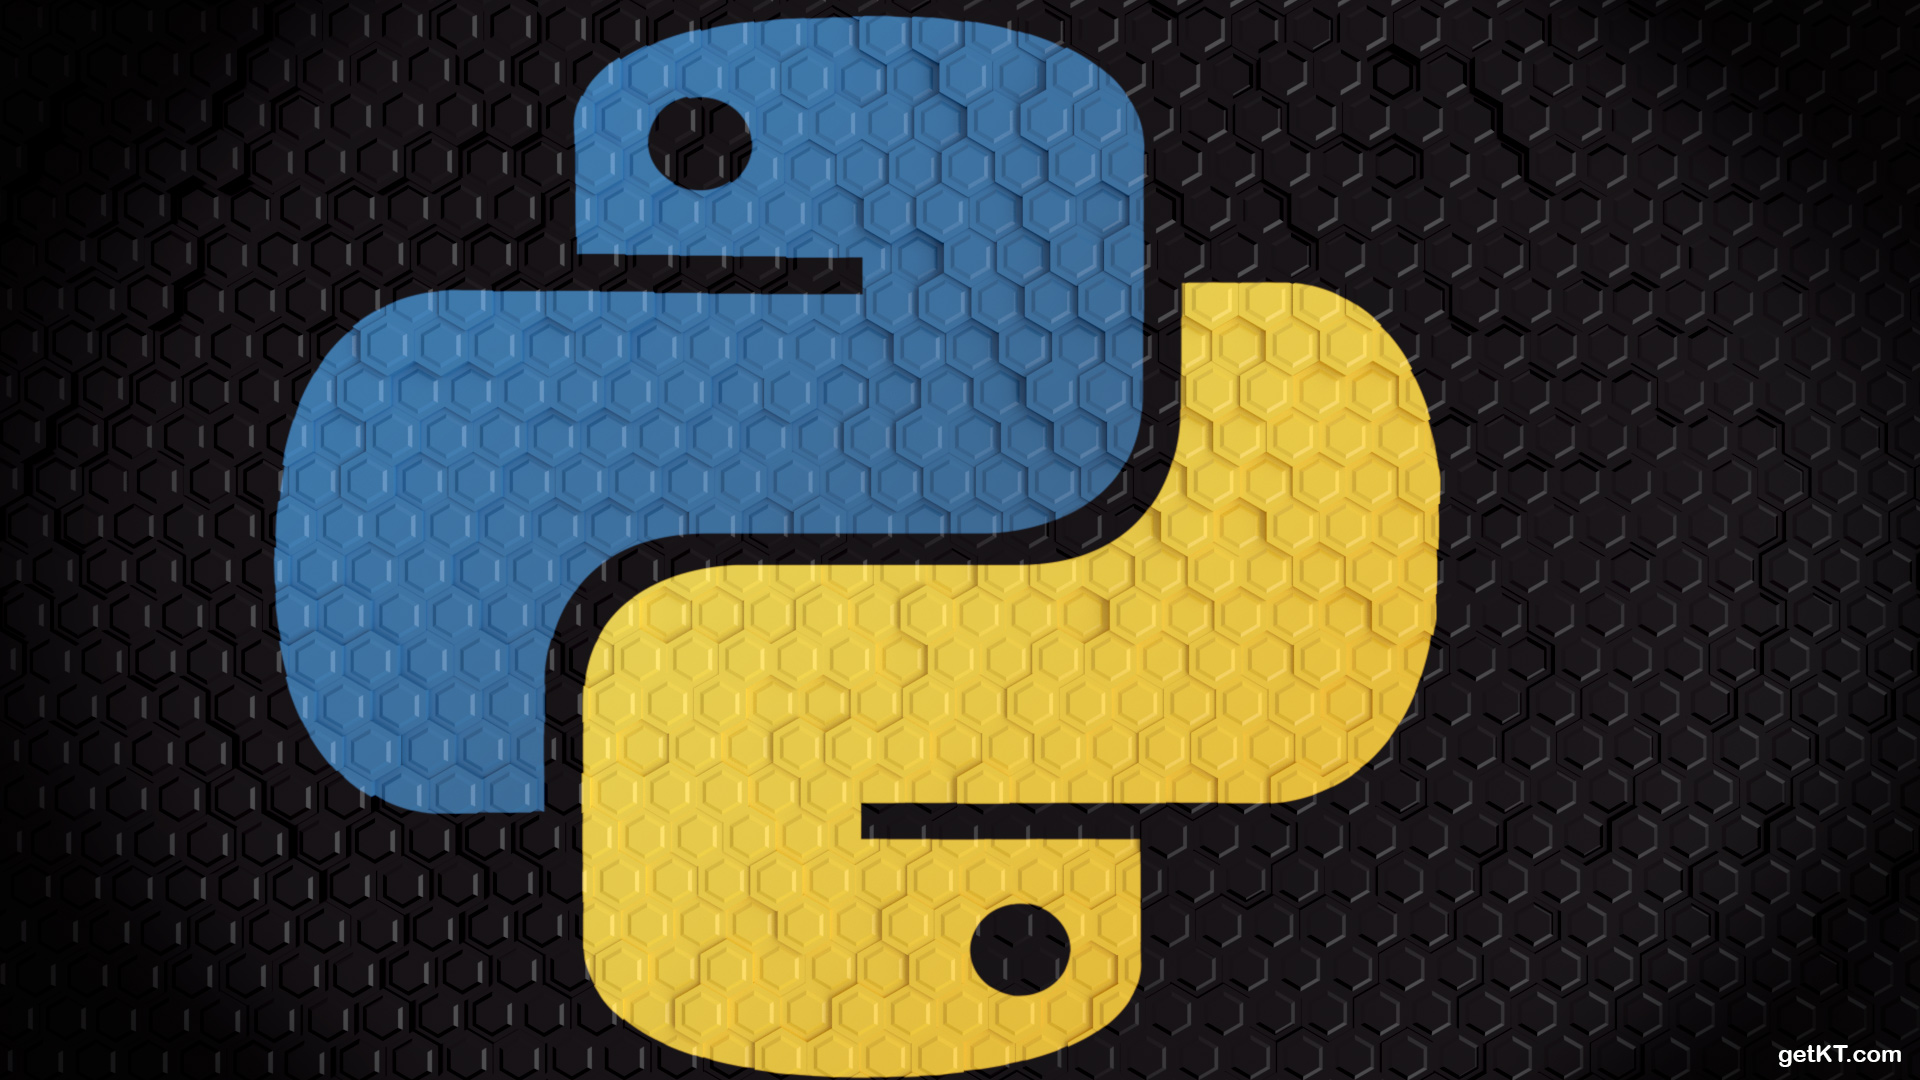 What is Python, why python, how and where it is used?